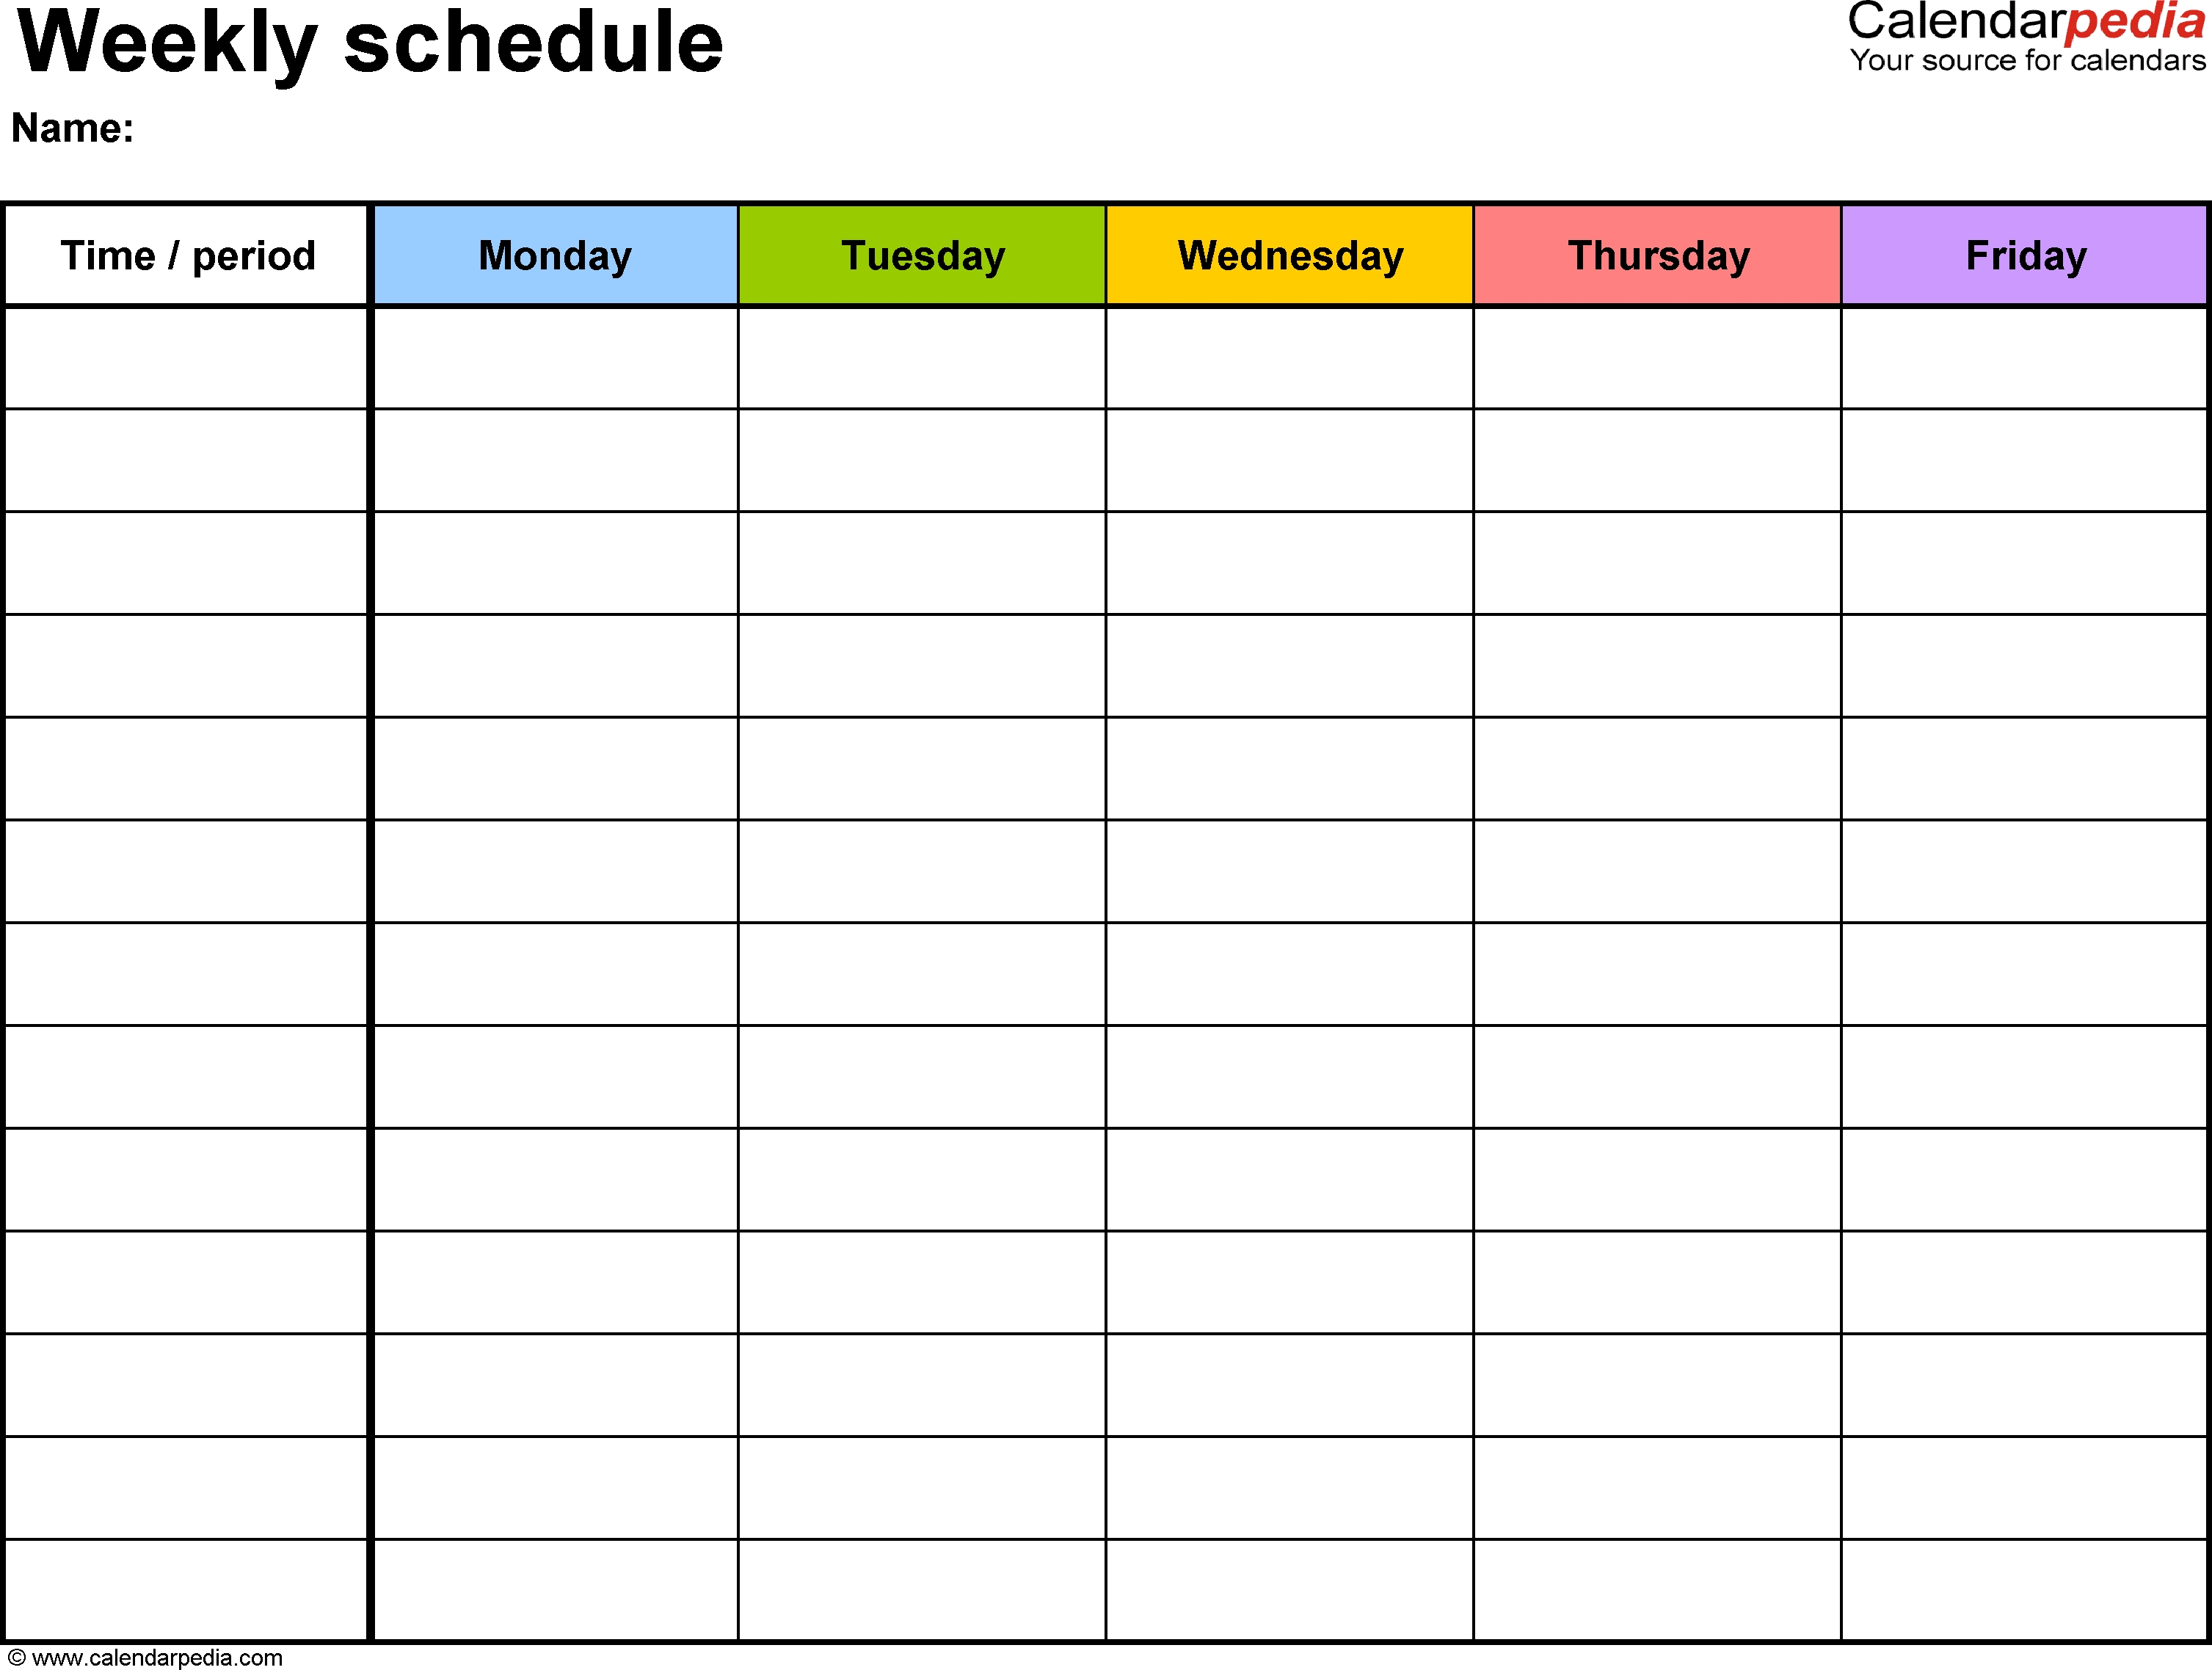 Free Weekly Schedule Templates For Excel - 18 Templates for Printable Monthly Calendar Template Monday Through Friday